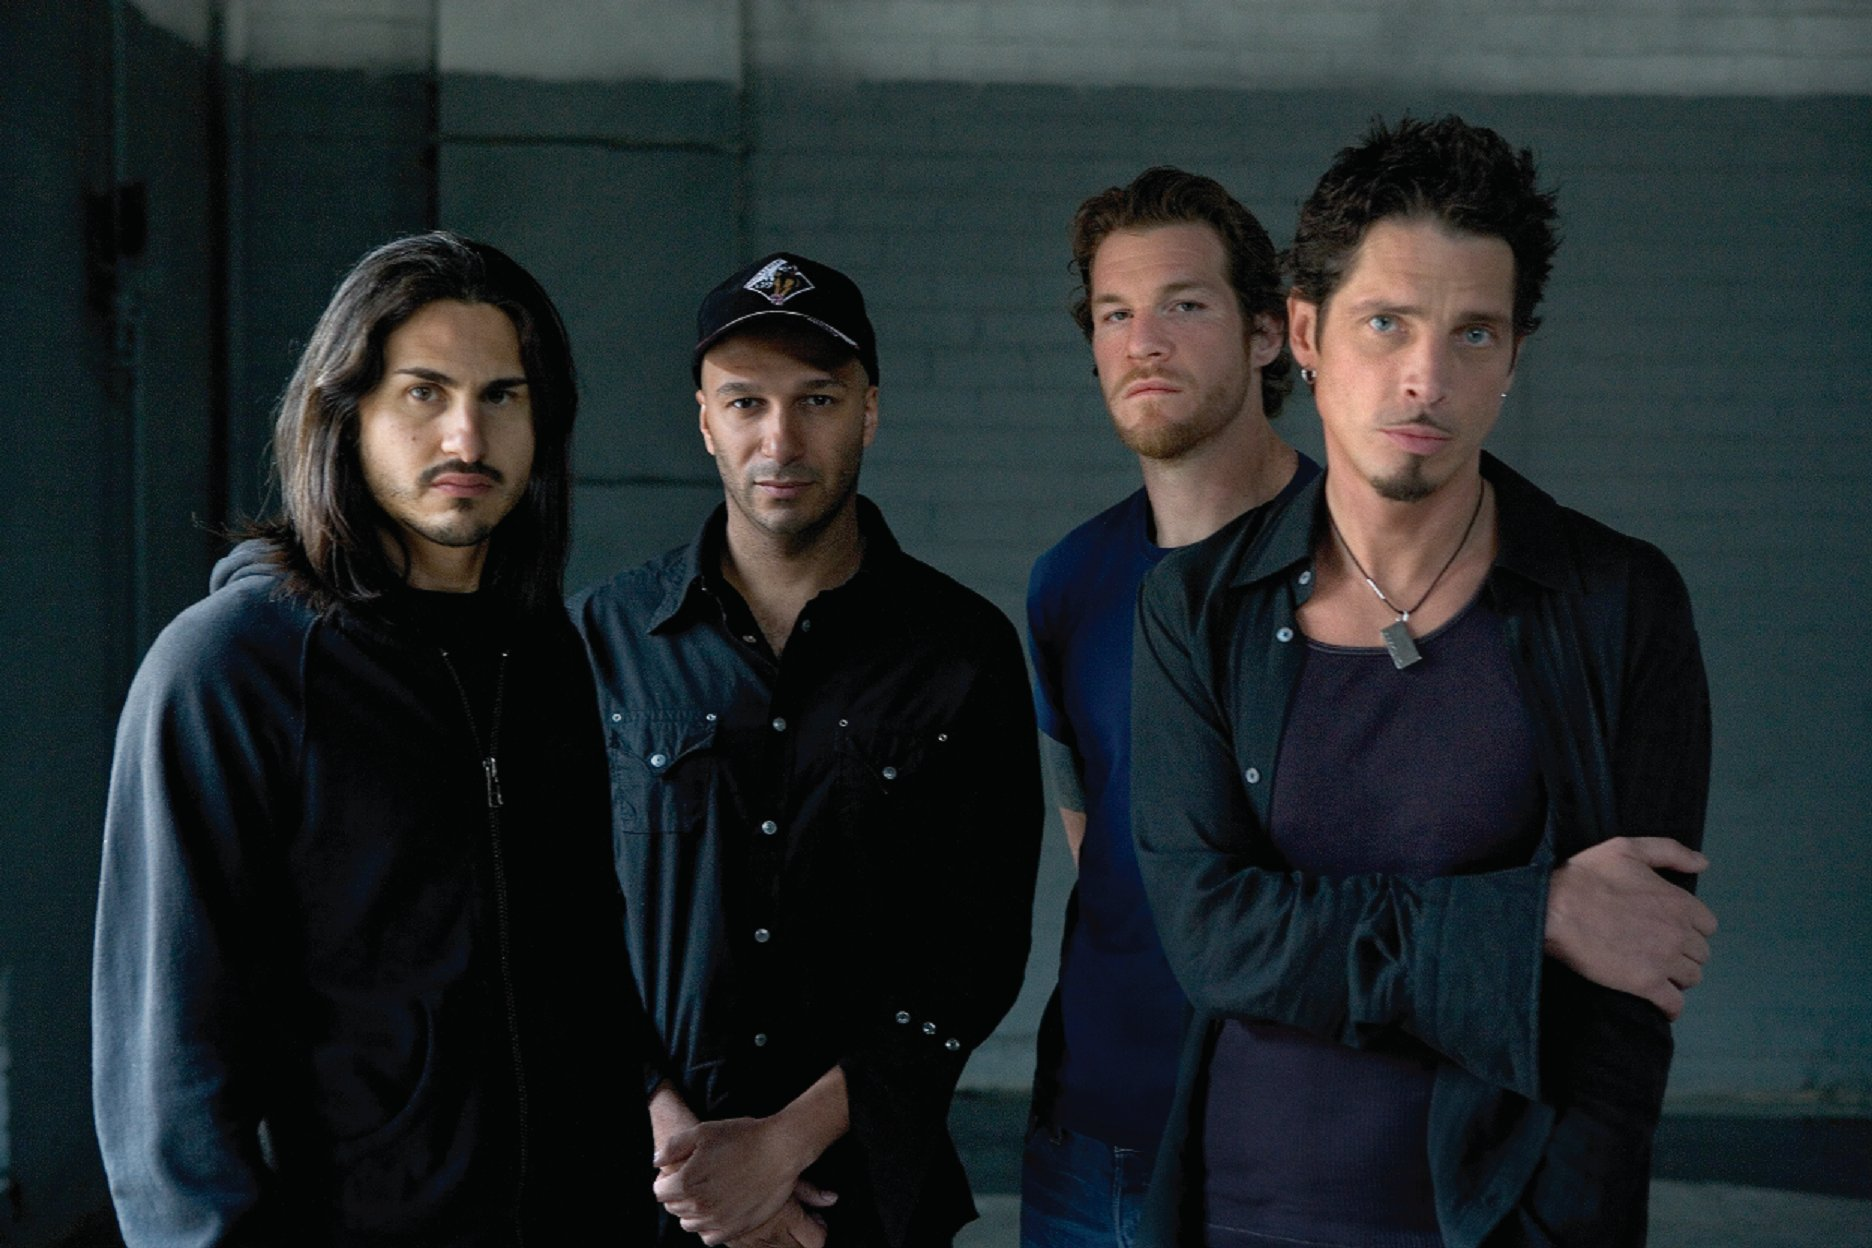 Audioslave-UMG-Ethan-A.-Russell-2005